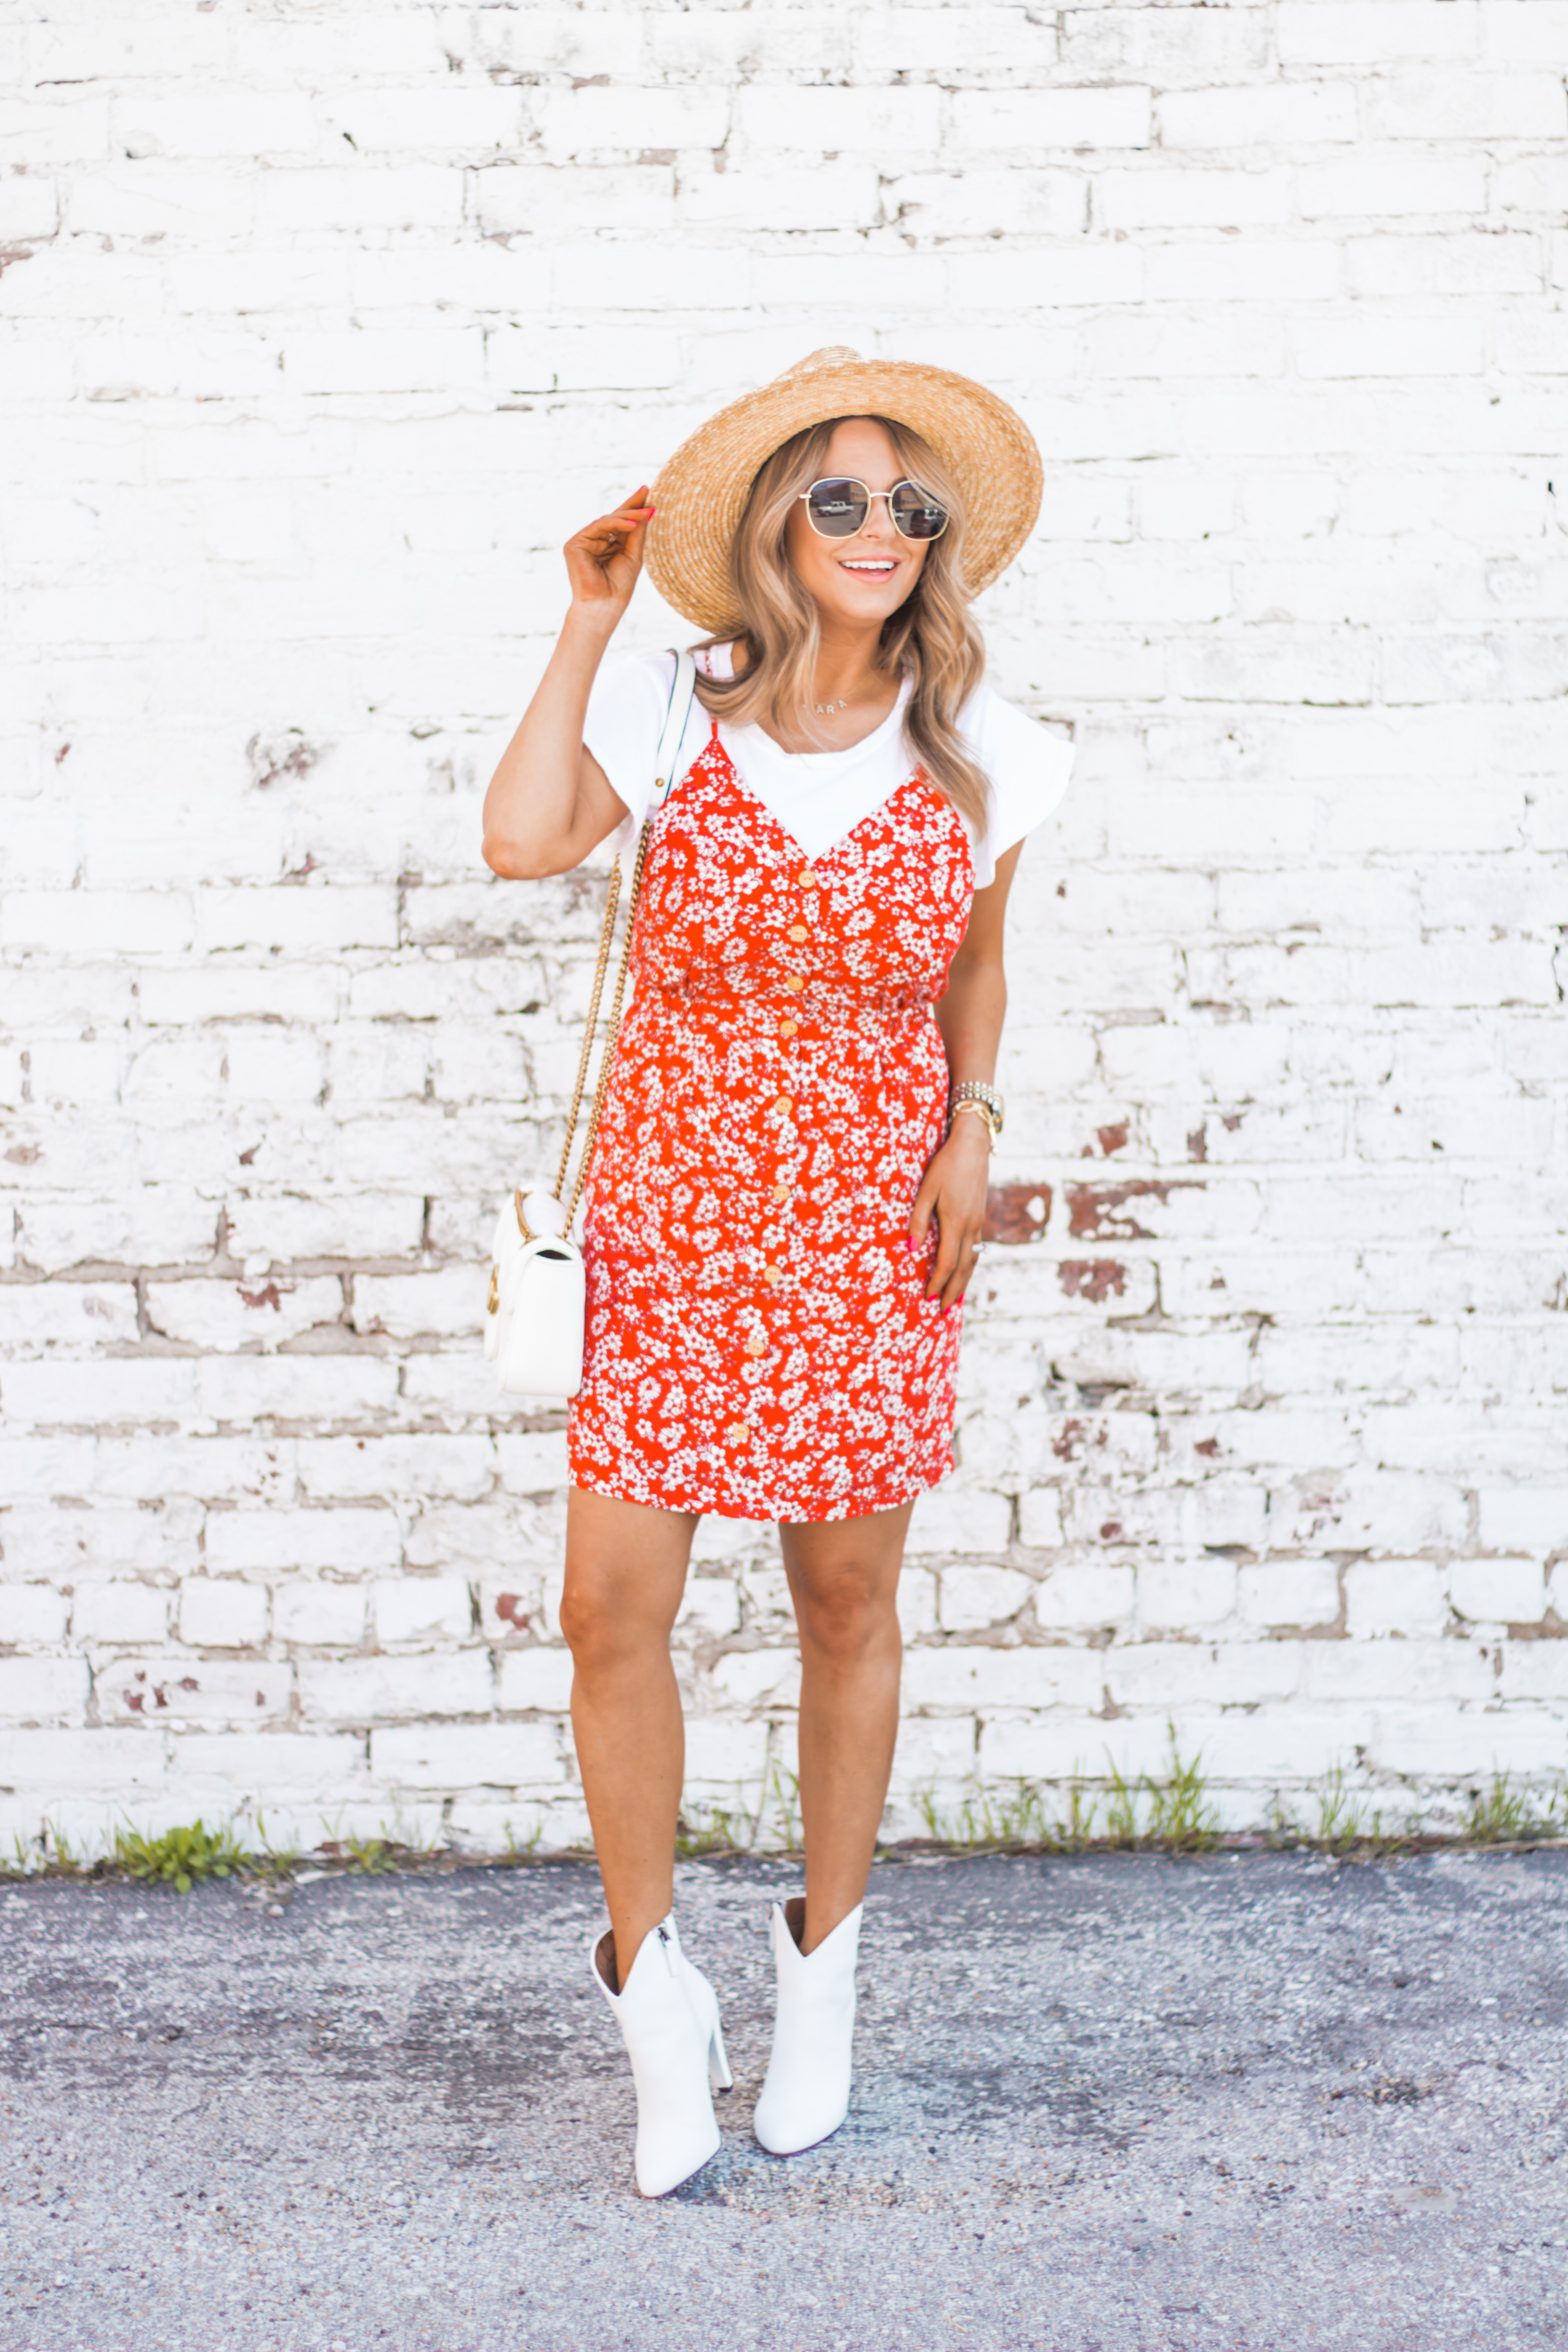 red-sundress-spring-summer-dress-floral dress-women's fashion- spring fashion-summer fashion-brixton hat-white booties-Omaha blogger-sabby style-10